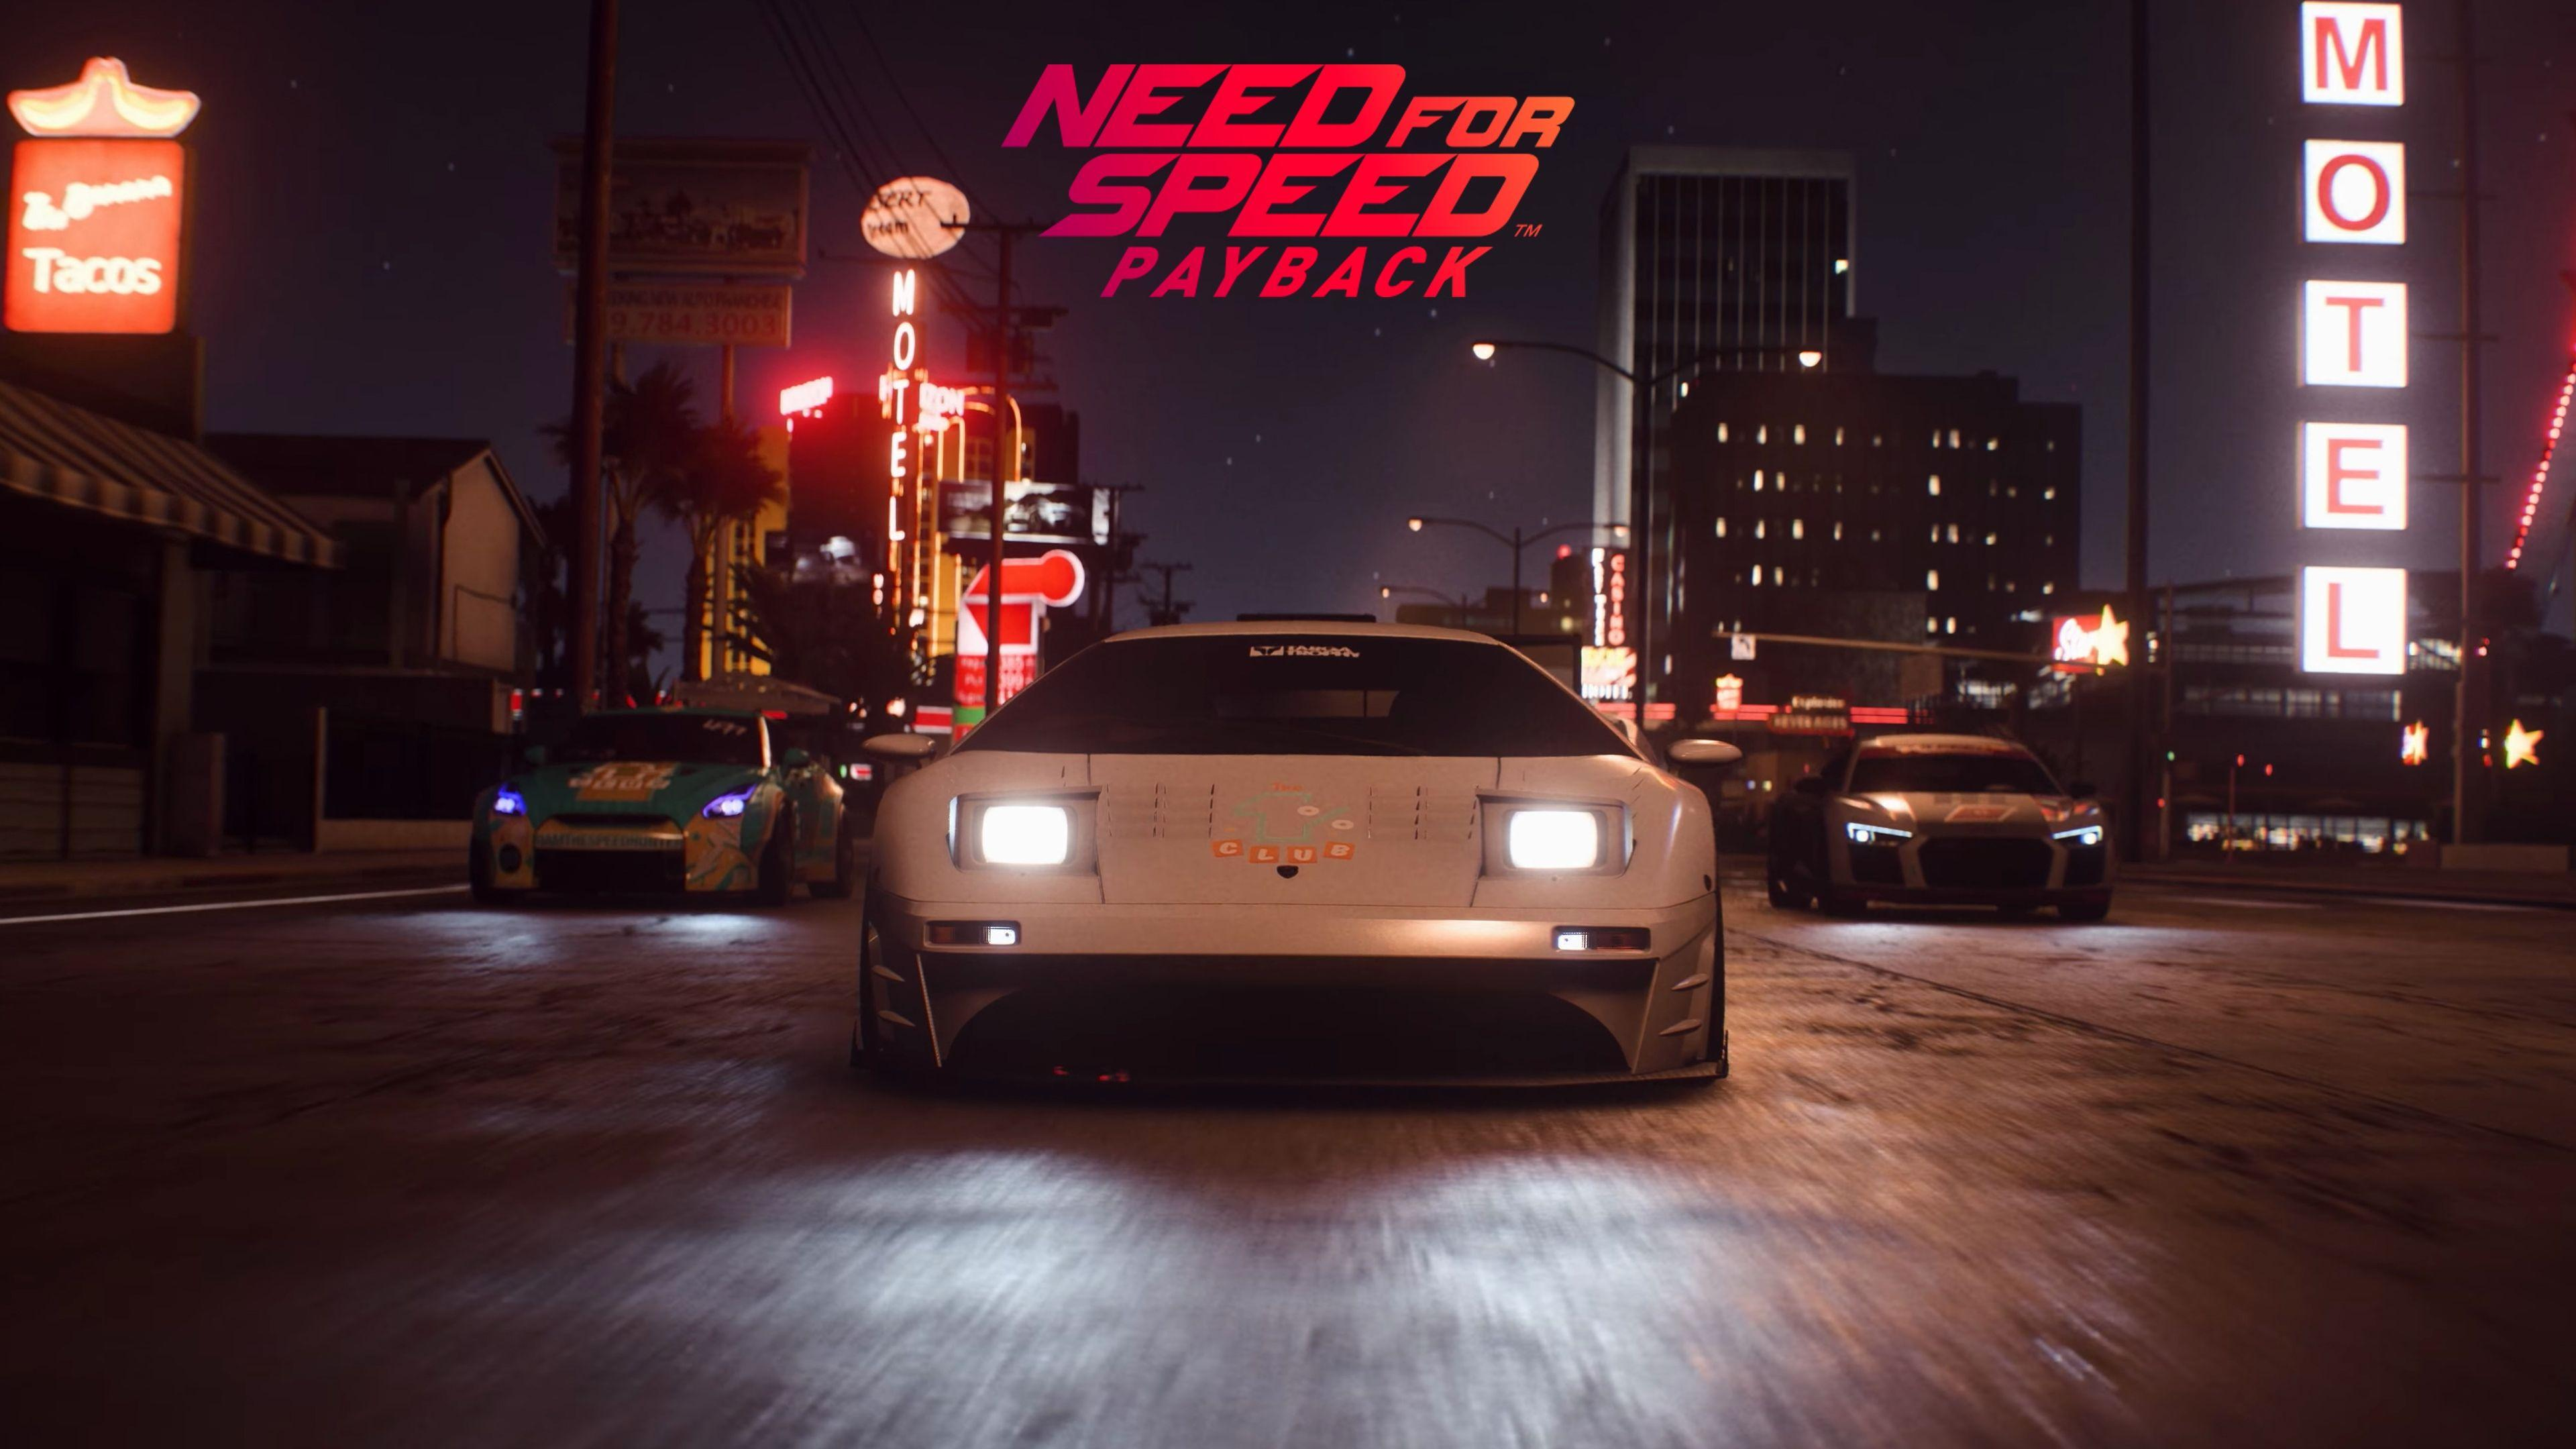 Need for Speed Payback, PC download, full version game, full pc game, for PC Before downloading make sure that your PC meets minimum system requirements. Minimum ...